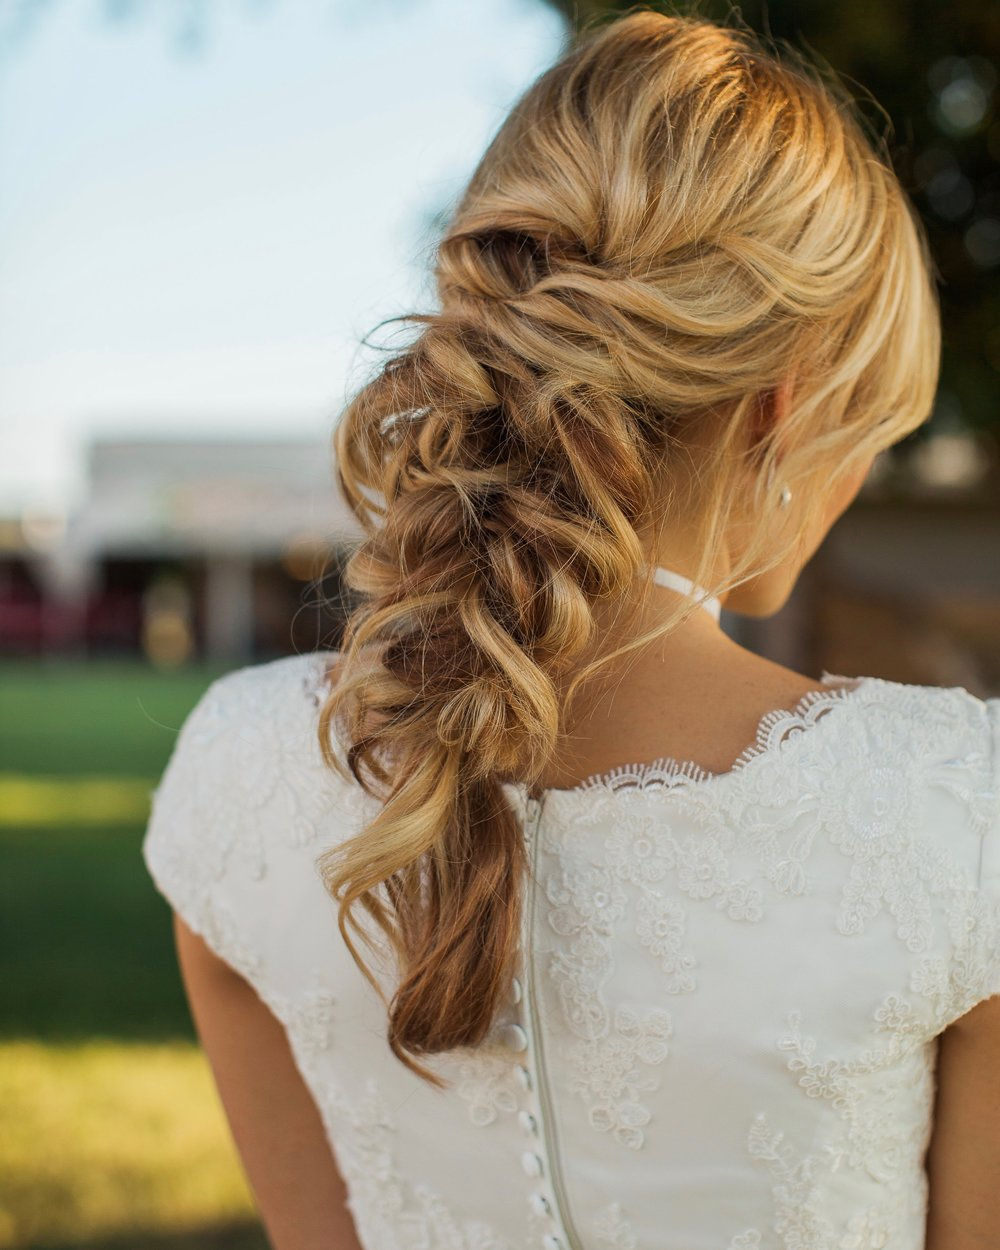 HAIR: Harley Ann Artistry | MAKEUP: Kelsea Jones | PHOTO: Jennie Karges | STYLING: Simple Means Events